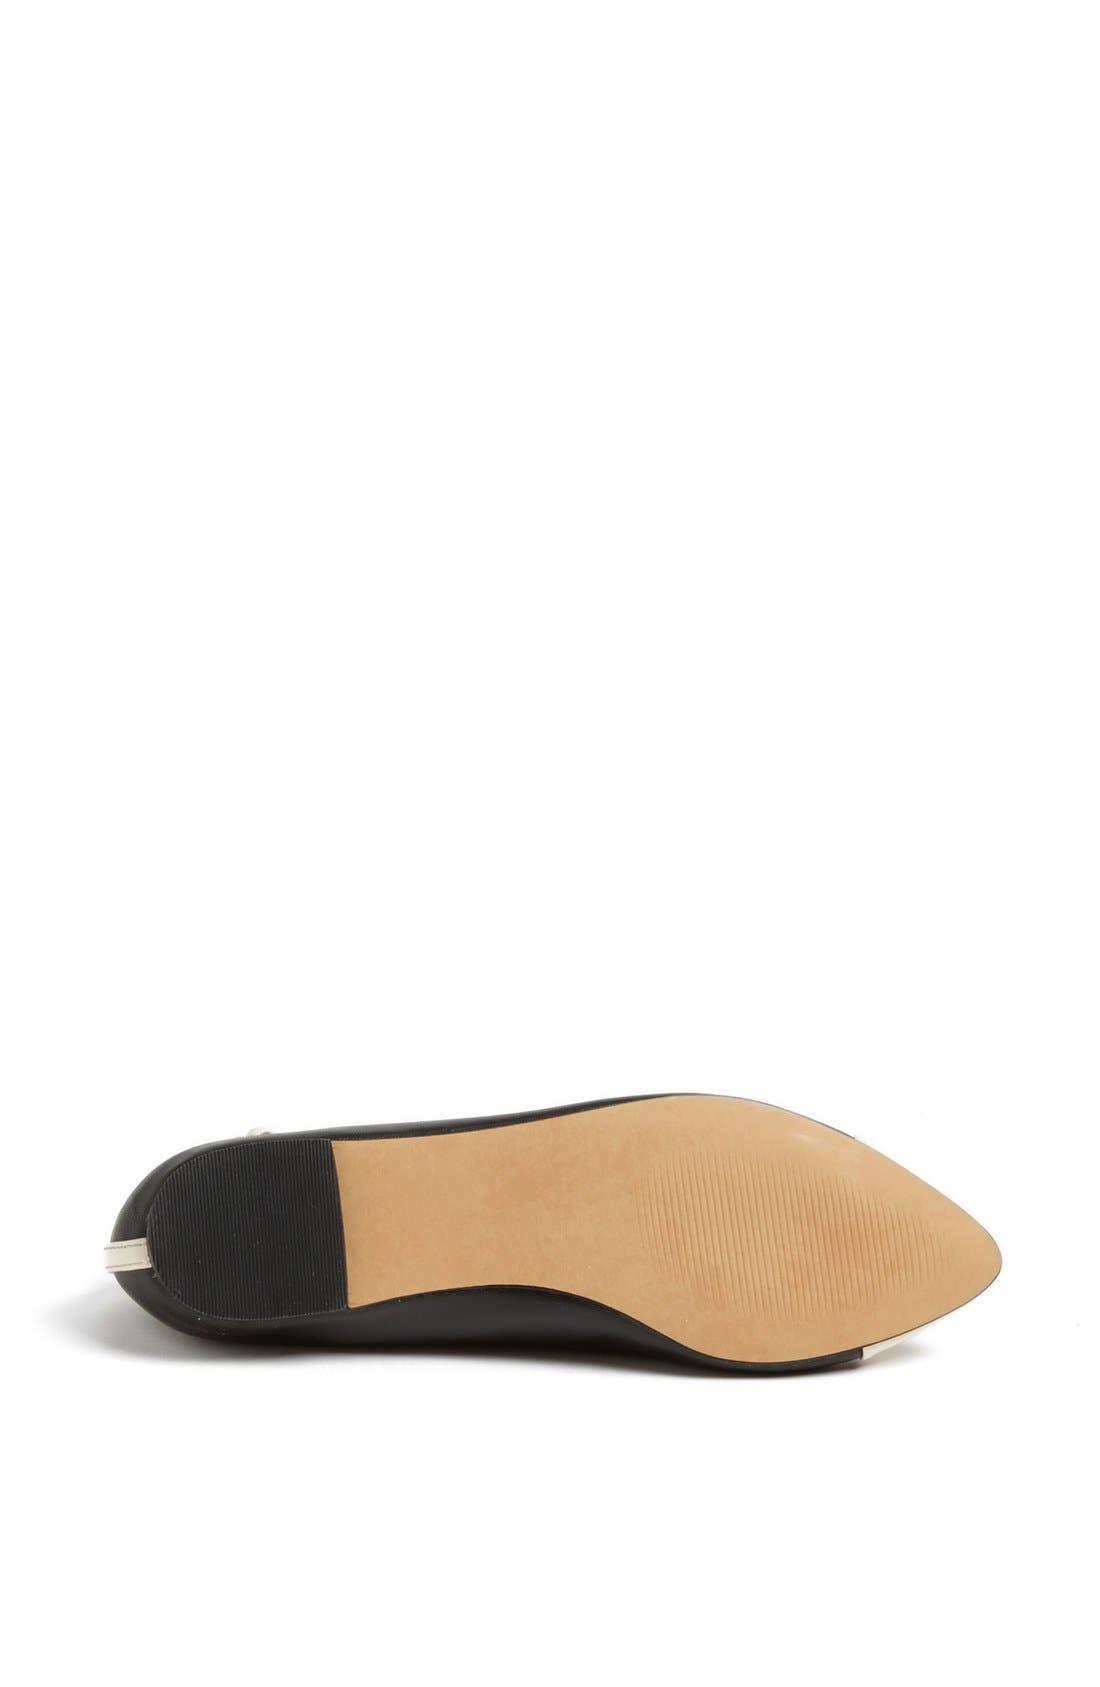 ,                             Julianne Hough for Sole Society 'Addy' Flat,                             Alternate thumbnail 3, color,                             001